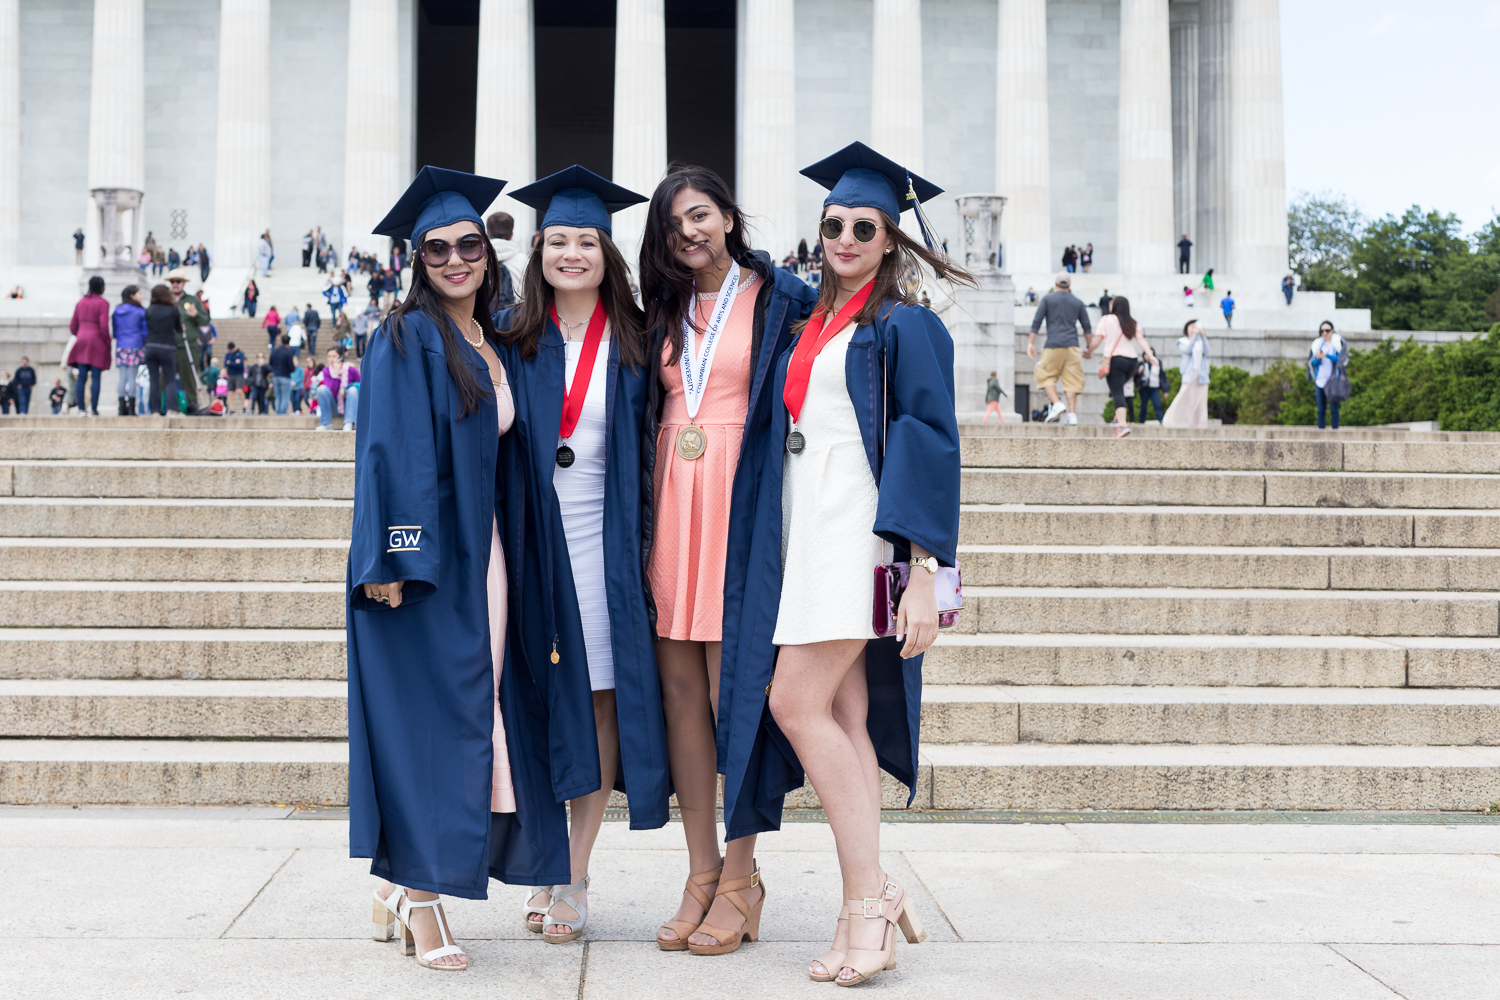 gwu_classof2016_commencement_washingtondc_george_washington_university_dc-47.jpg